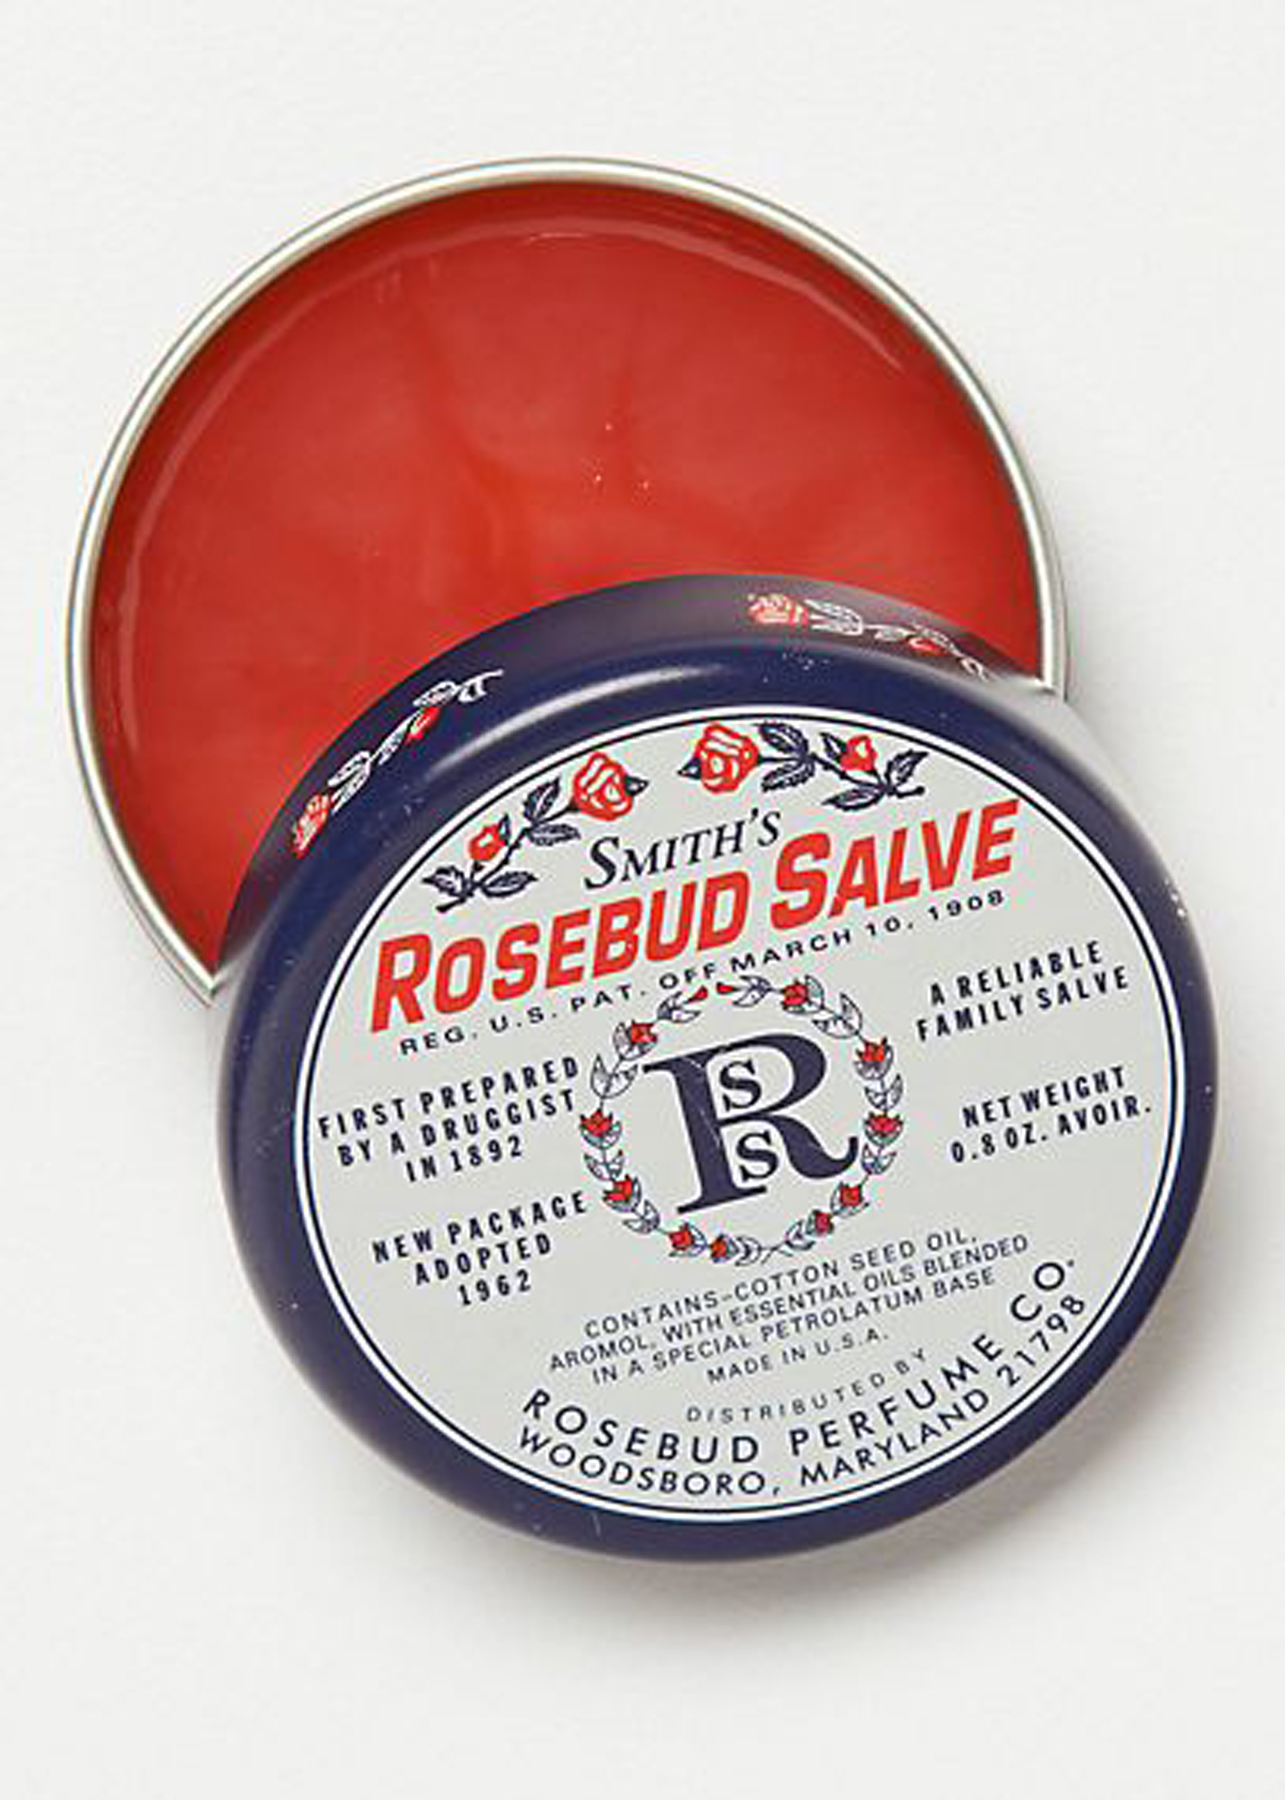 Best Stocking Stuffer Ideas for Men, Women, and Teens: Smith's Rosebud Salve